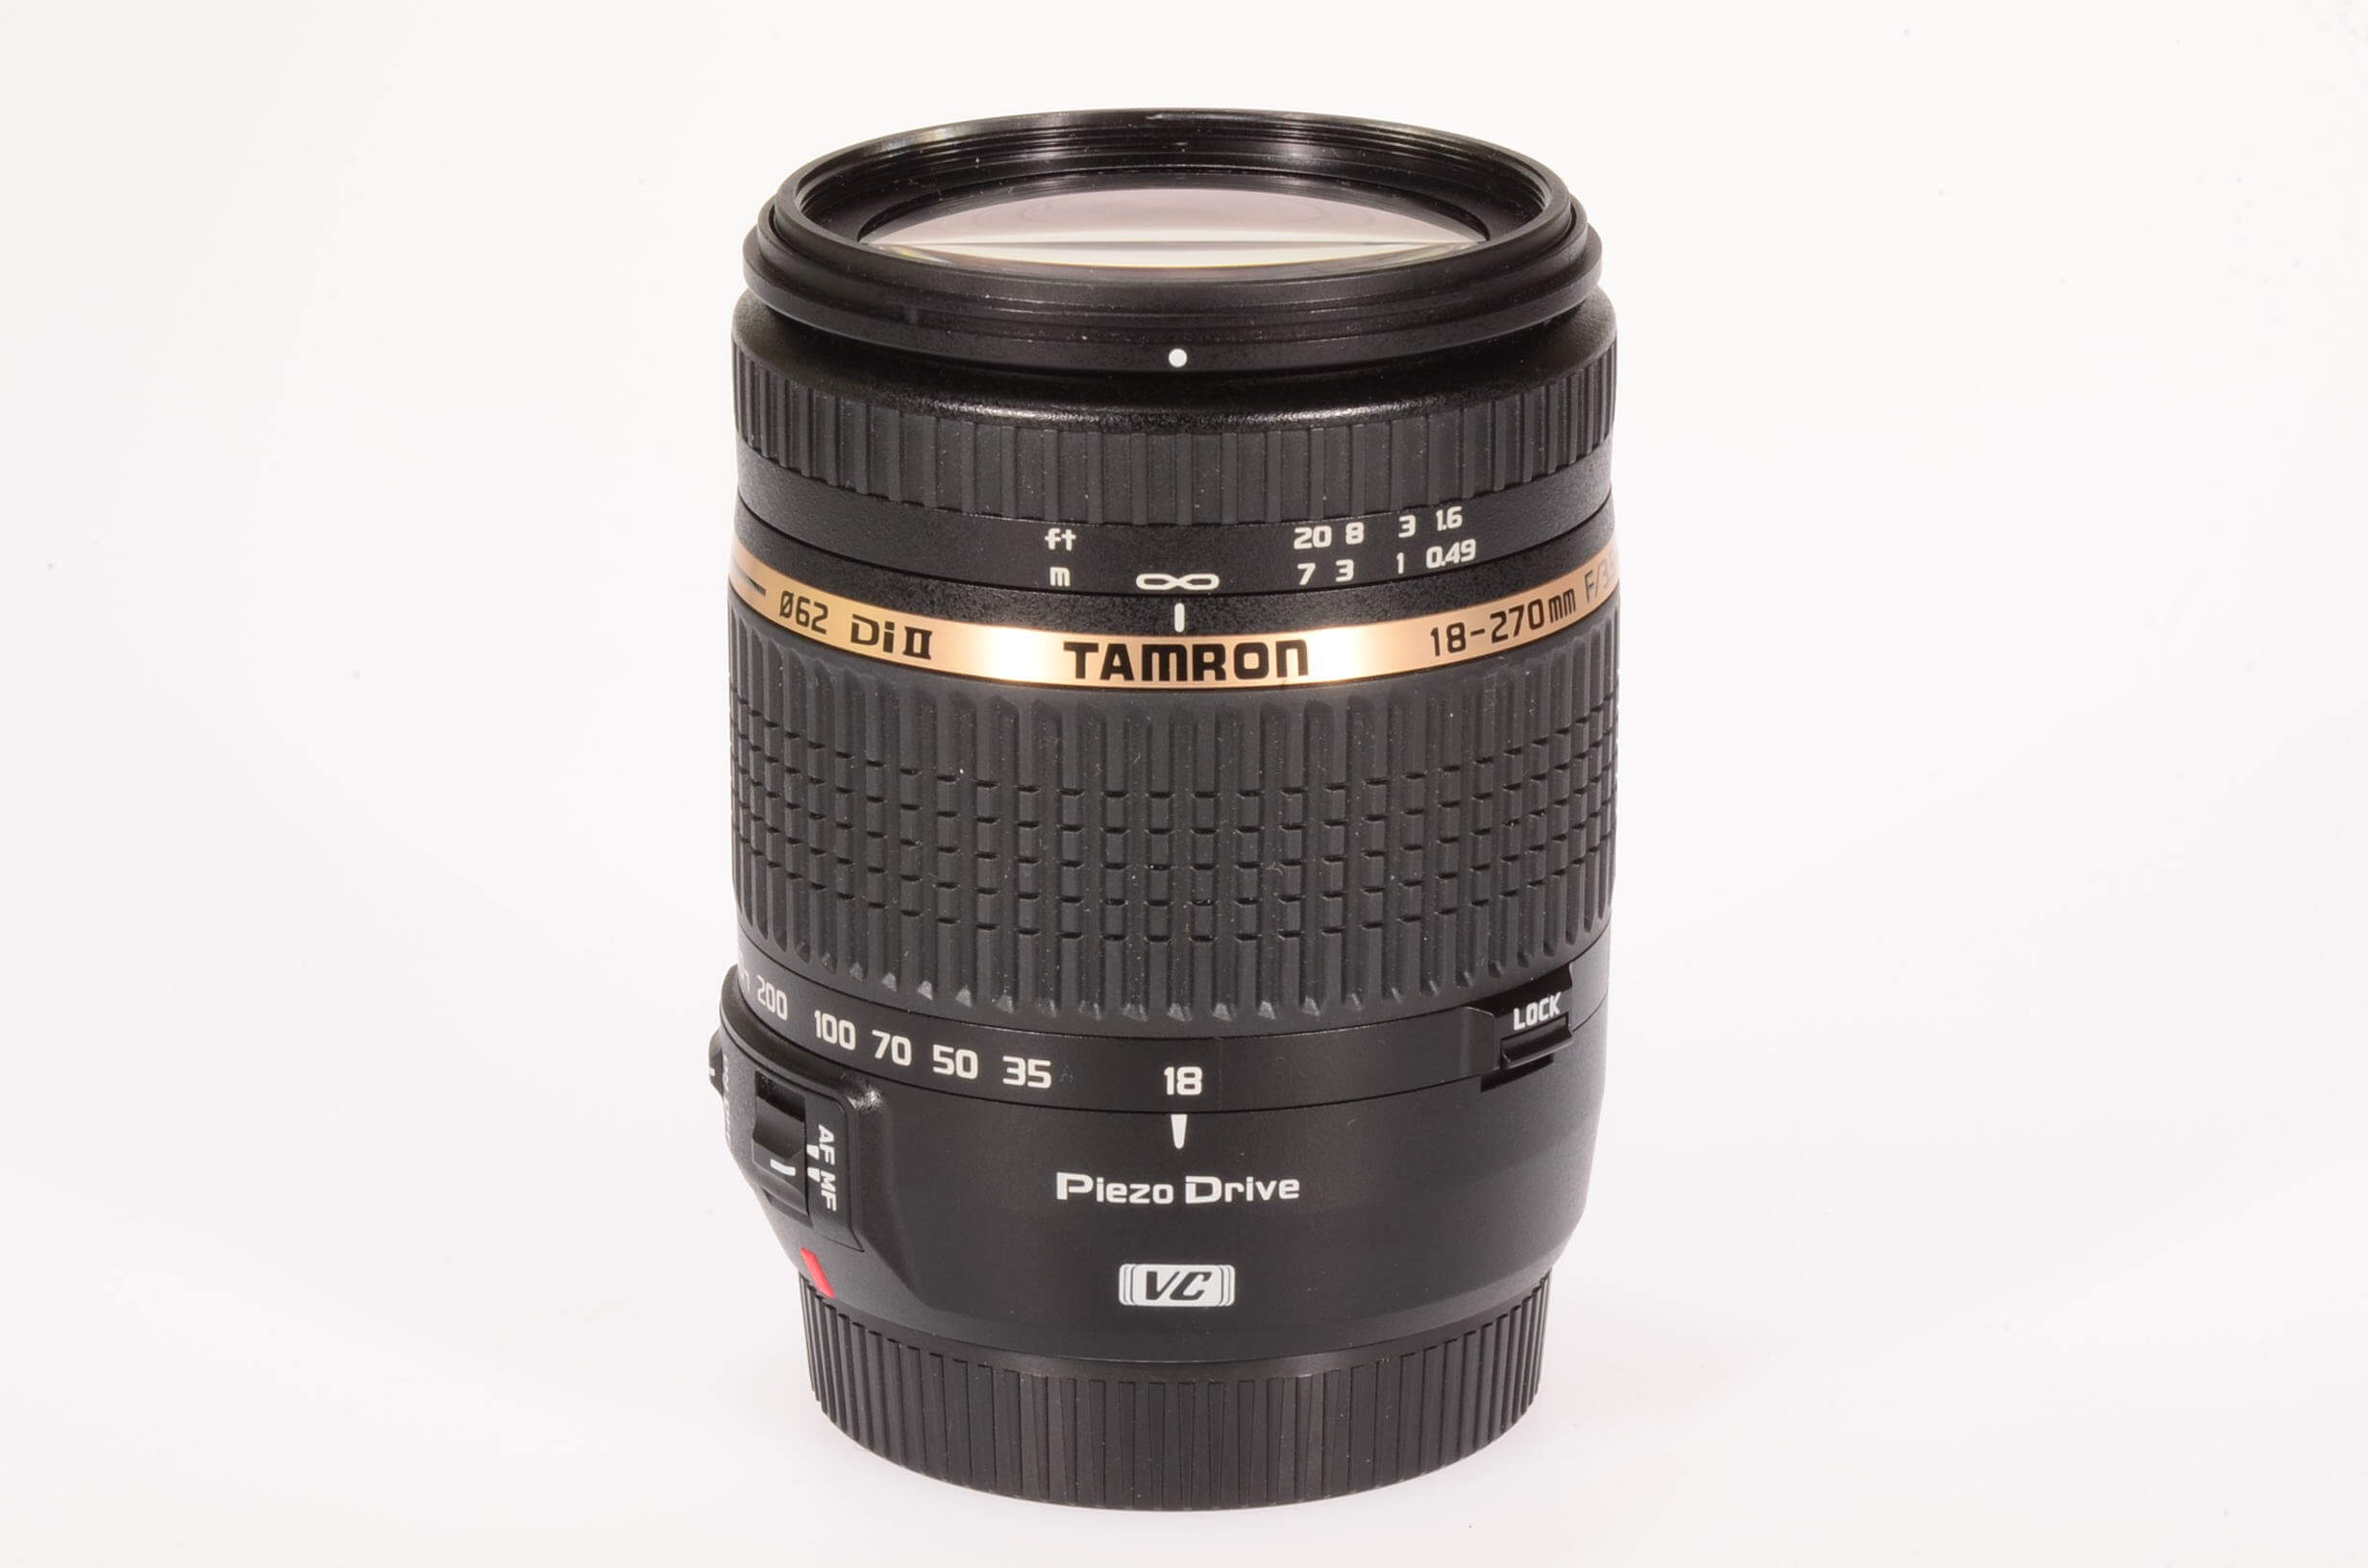 Tamron 18-270mm f3.5-6.3 Di II VC PZD, Canon EOS fitting, totally mint!